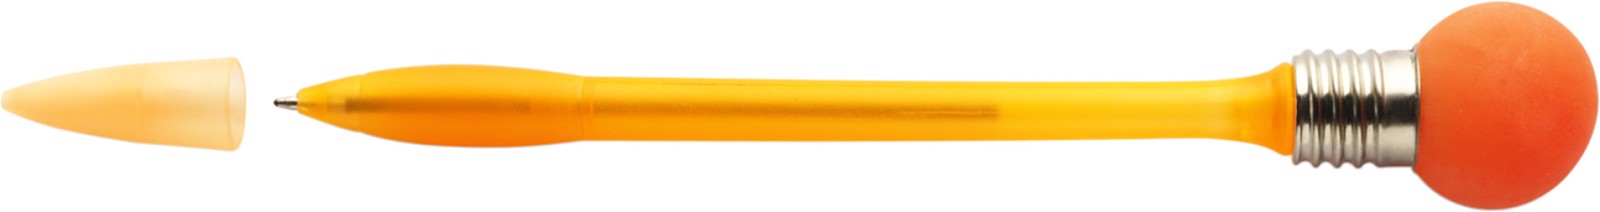 Plastic ballpen - Orange